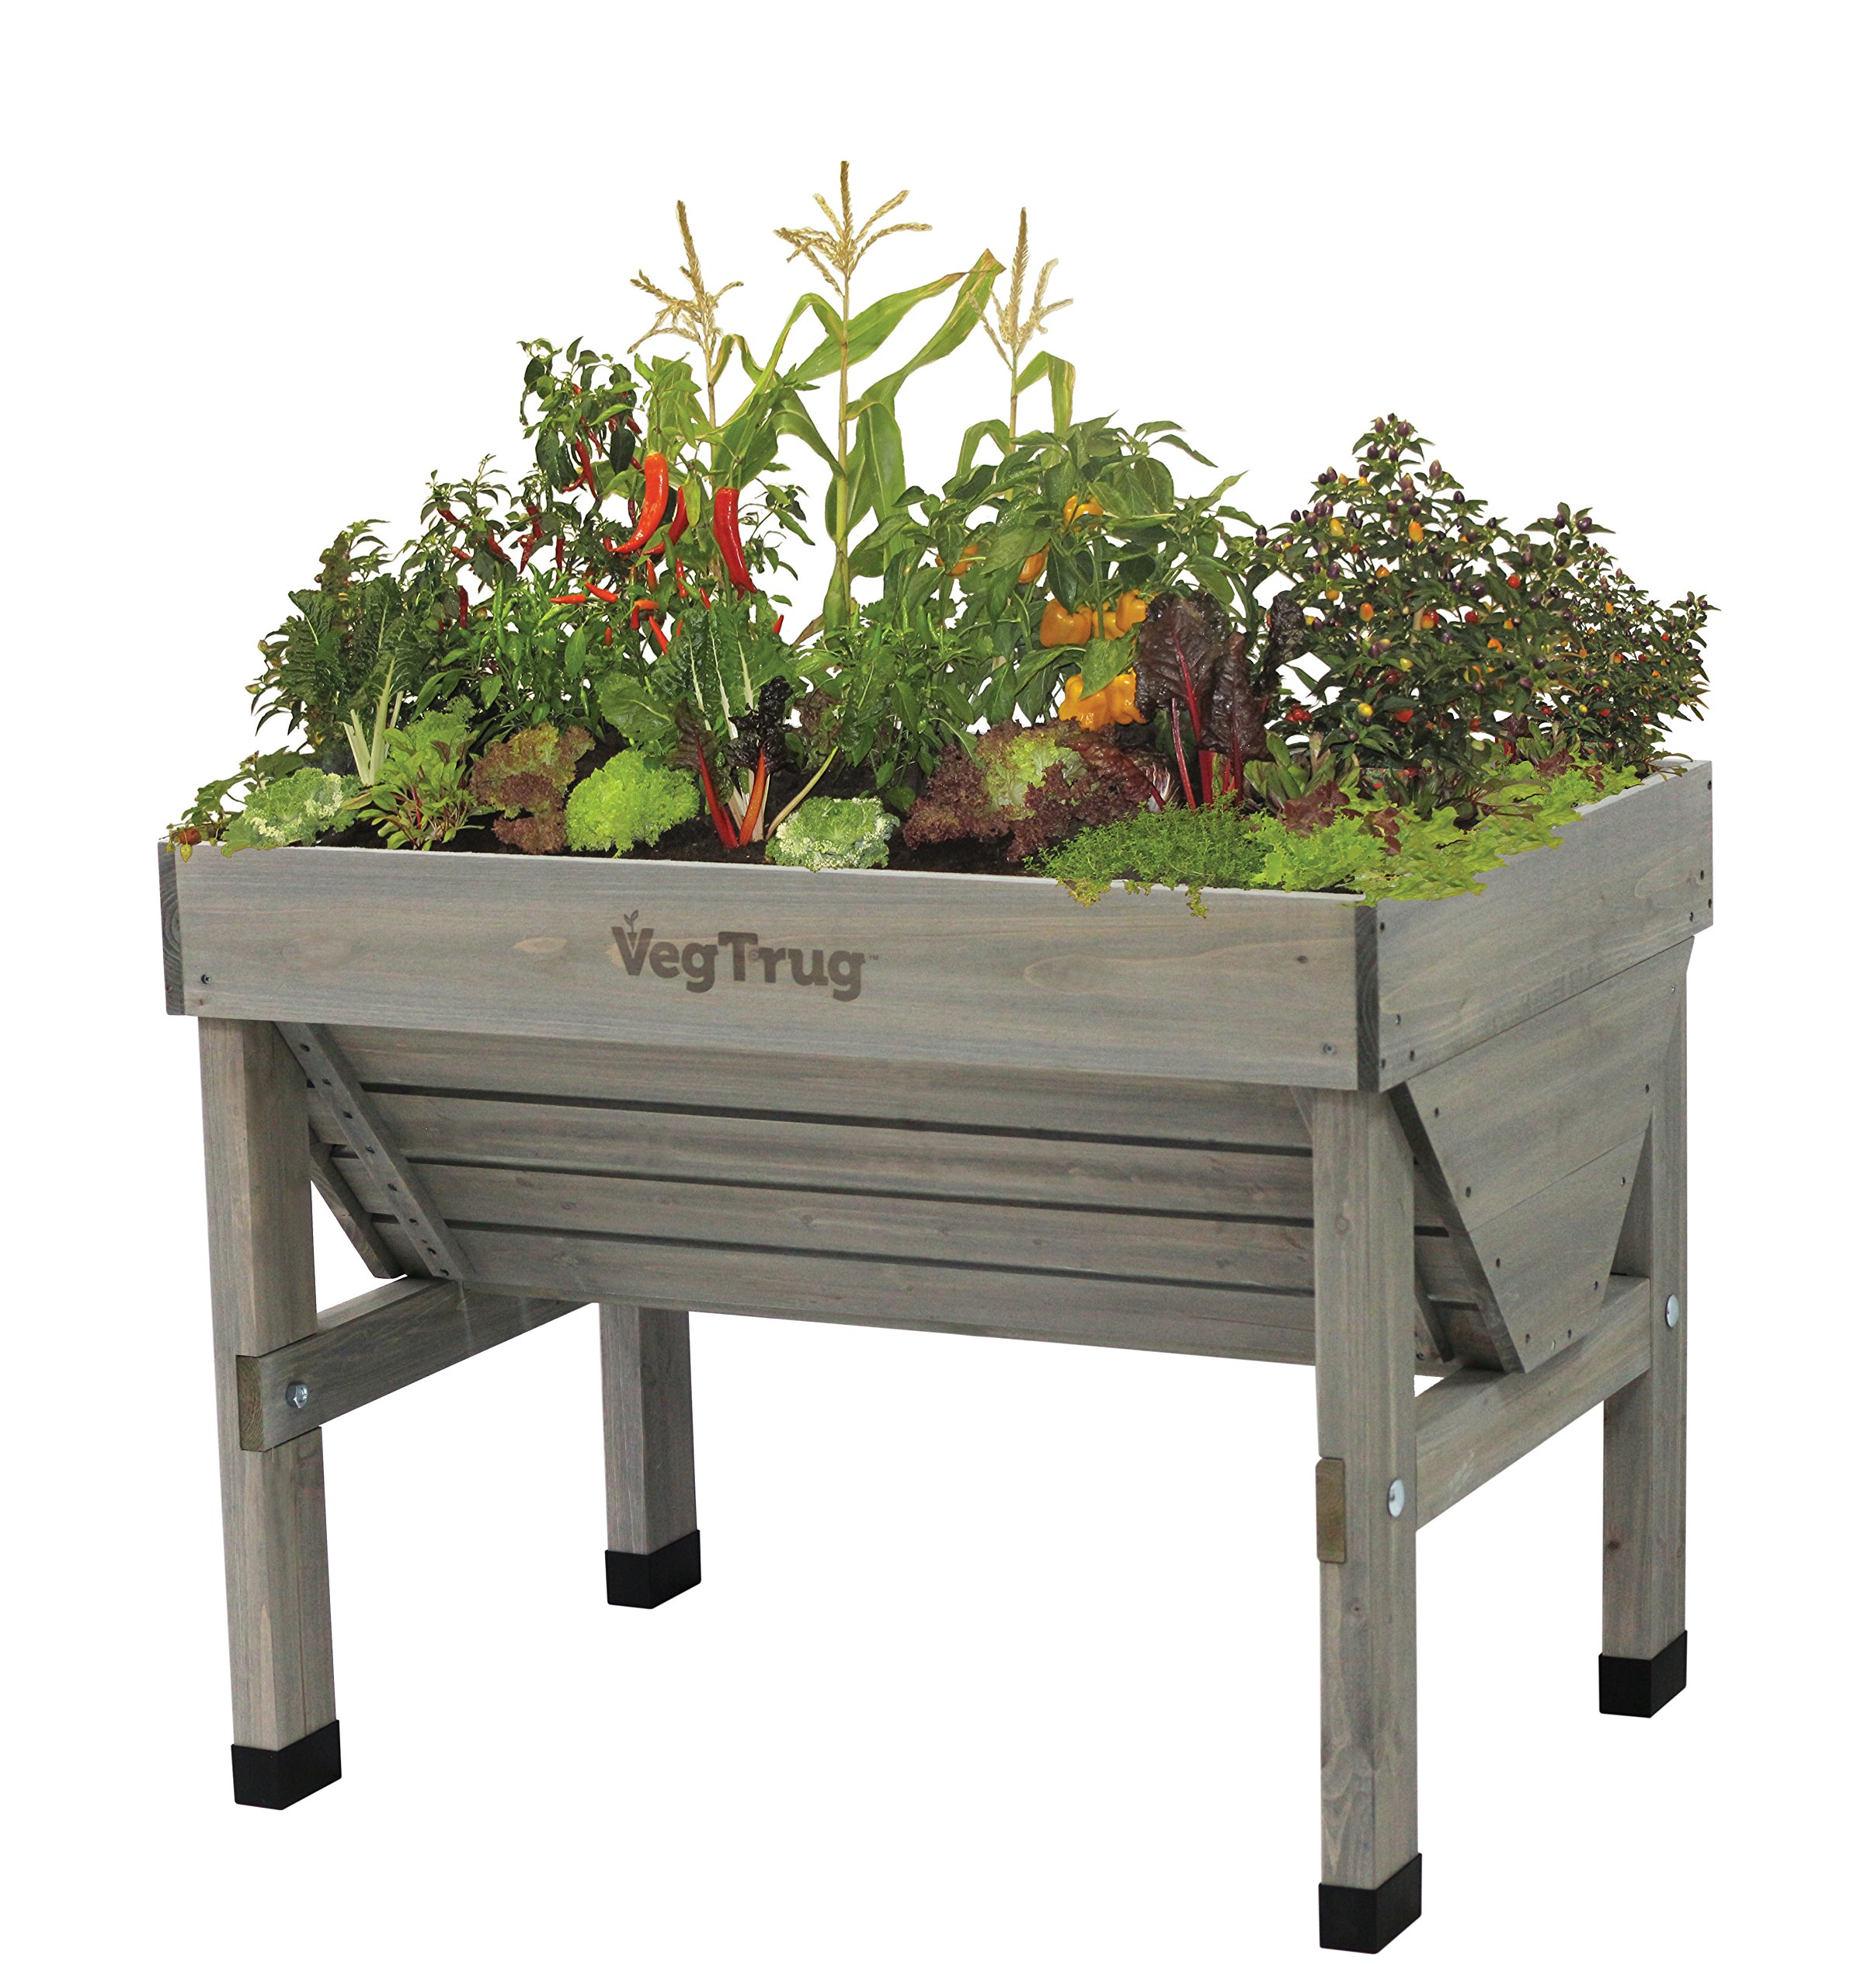 Vegtrug VTGWS 0391 USA Small Grey Wash Raised Bed Planter by Veg Trug